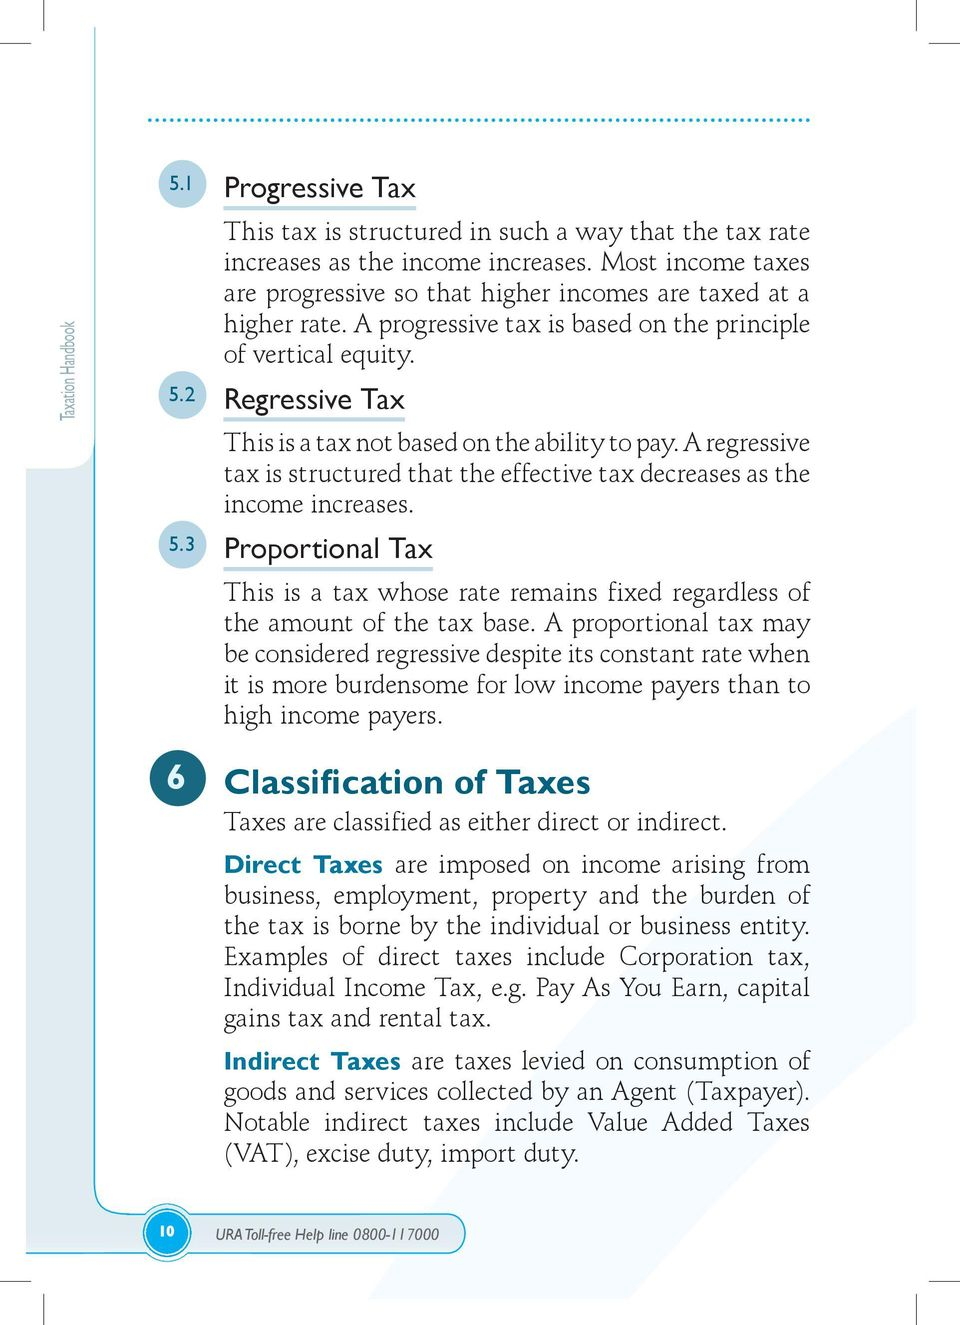 2 Regressive Tax This is a tax not based on the ability to pay. A regressive tax is structured that the effective tax decreases as the income increases. 5.